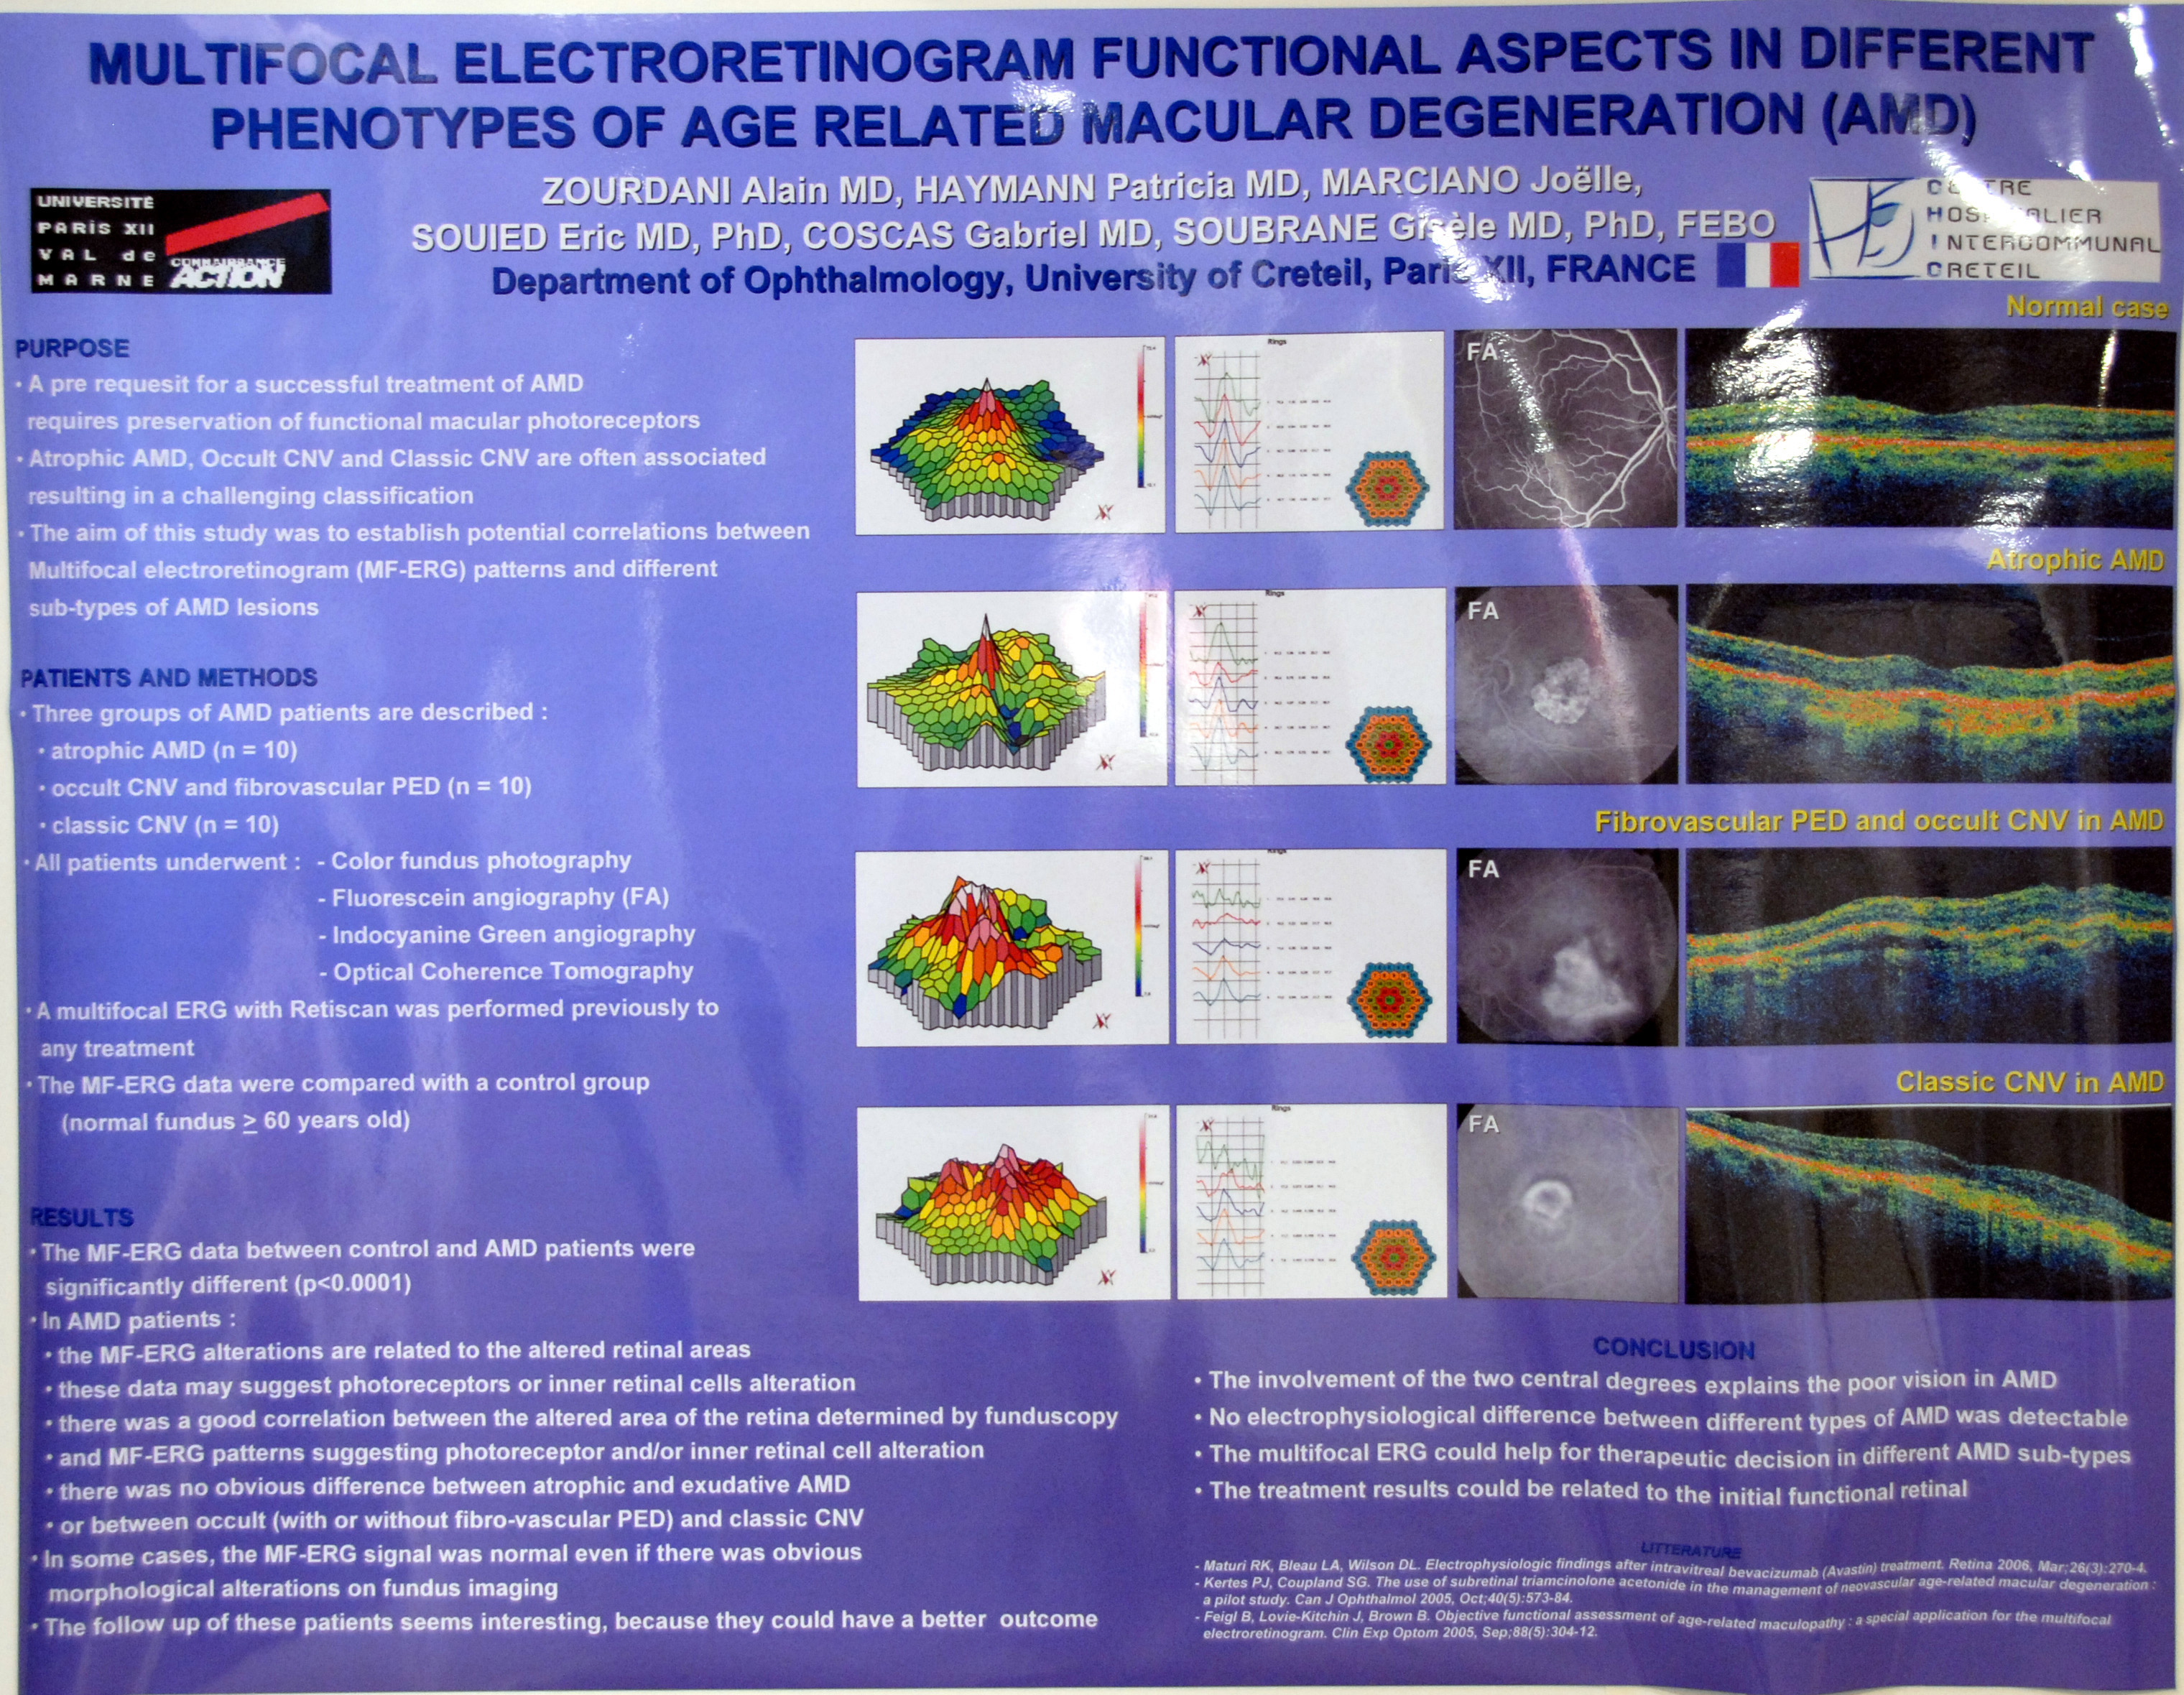 - Multifocal-Electroretinogram-Functional-Aspects-in-Different- Phenotypes-of-Age-Related-Macular-Degeneration